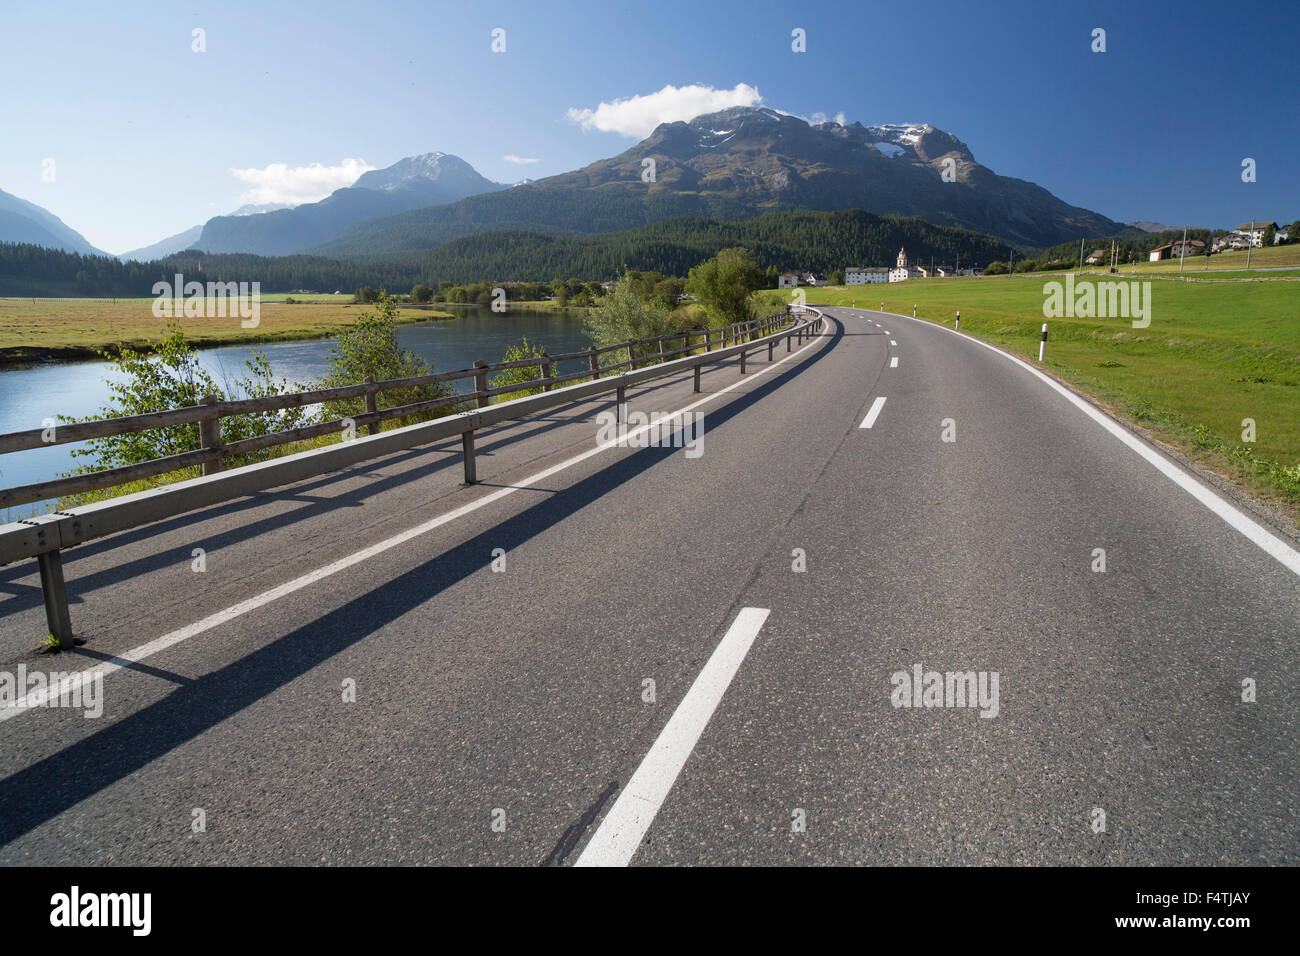 Street in Inn in Engadin, - Stock Image